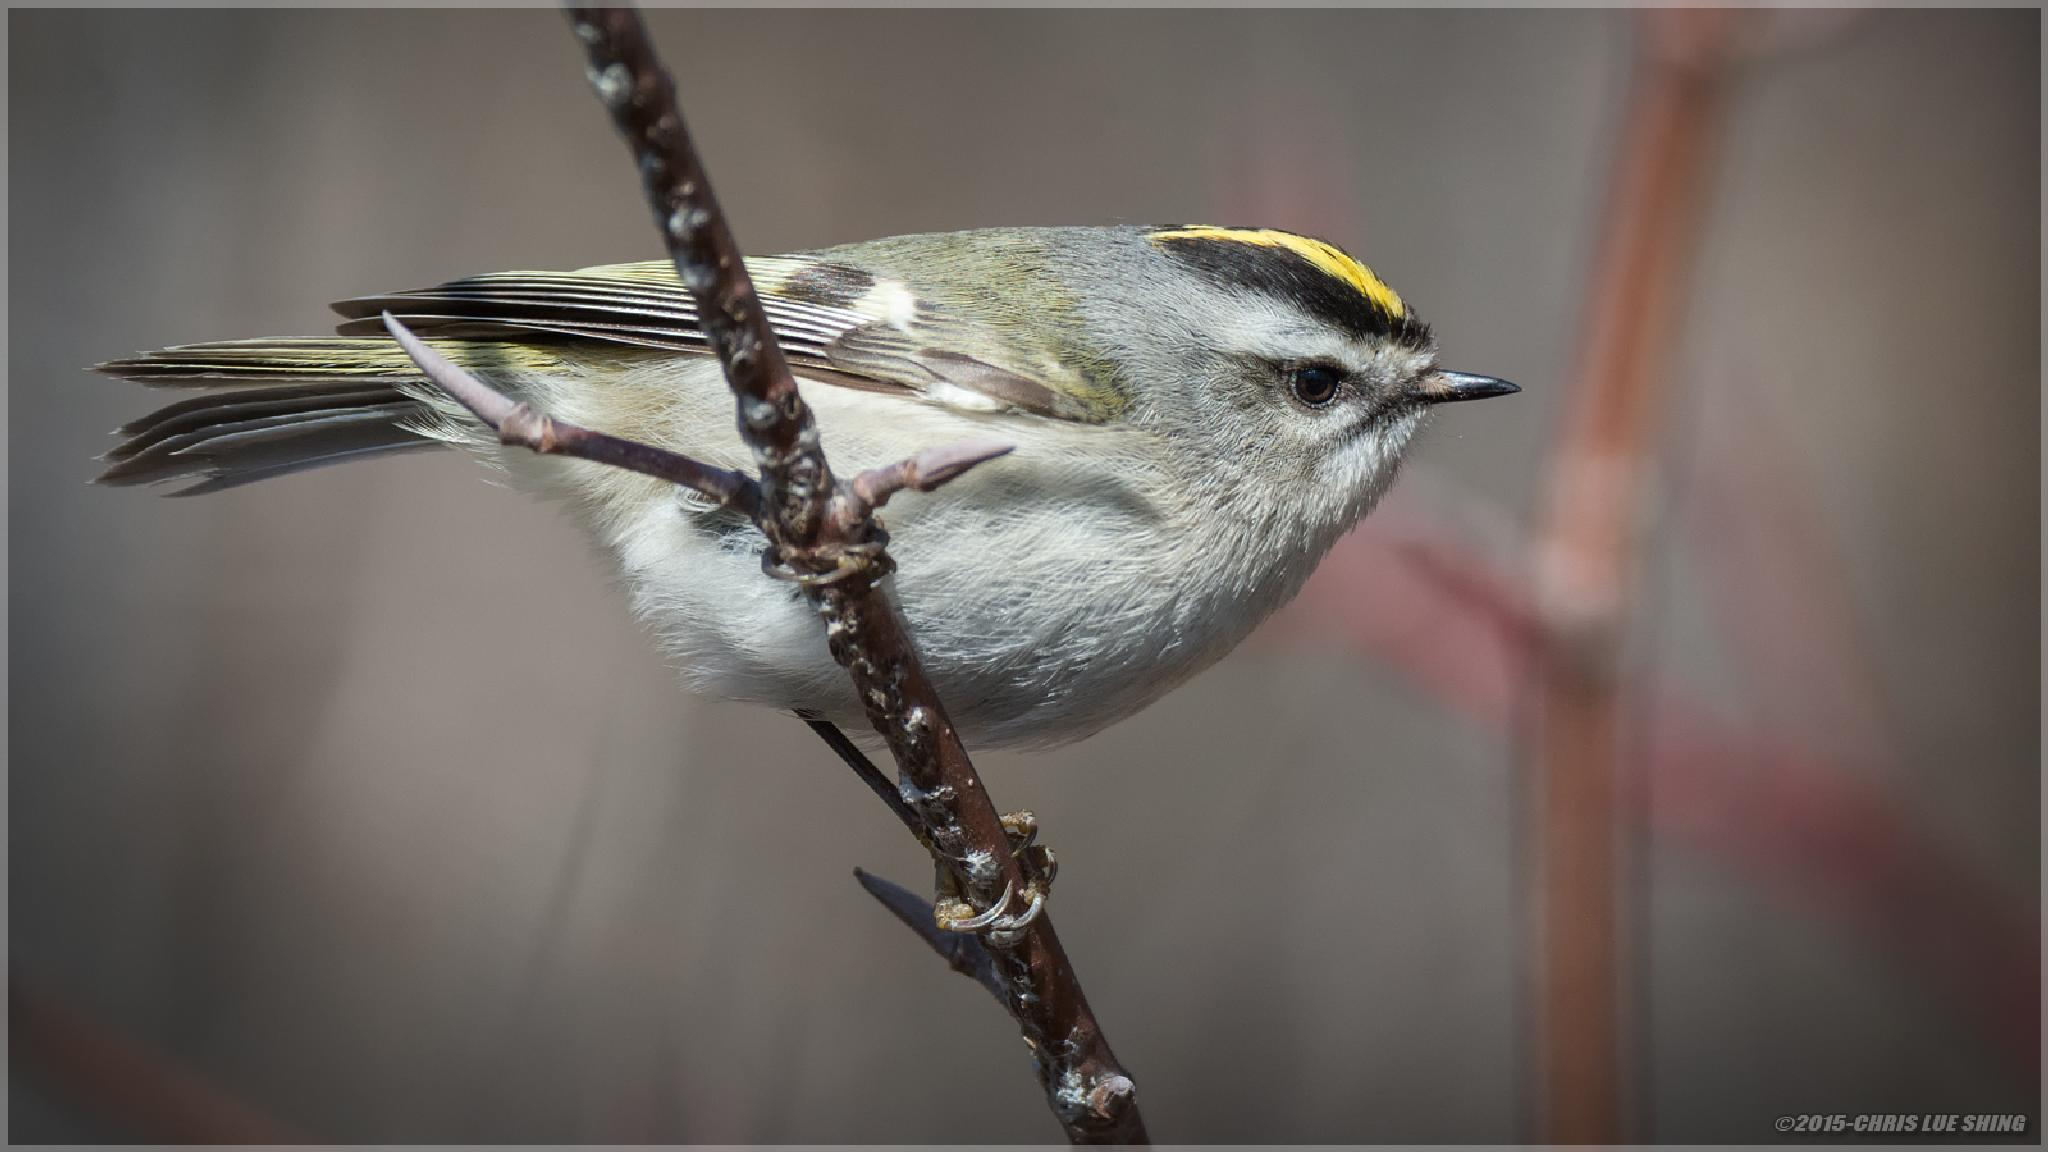 Golden-crowned Kinglet by Chris Lue Shing